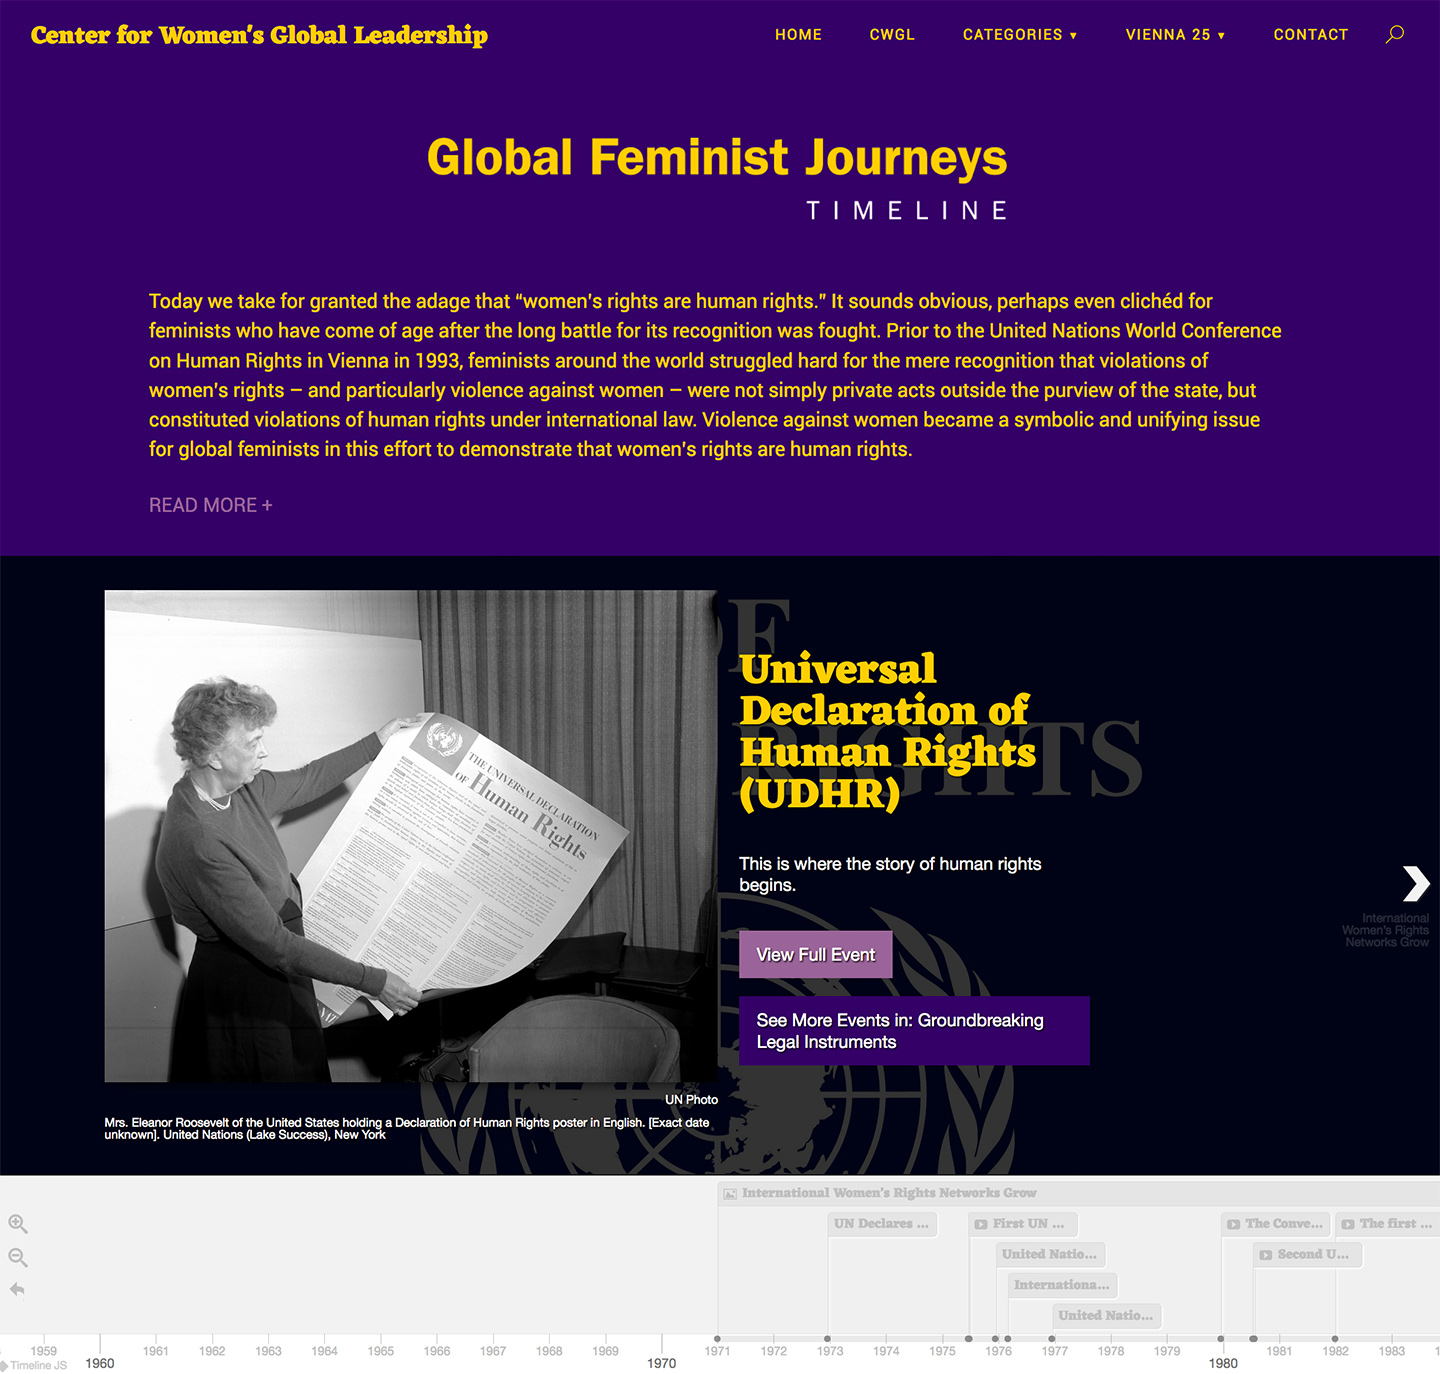 Celebrating Global Feminist Journeys